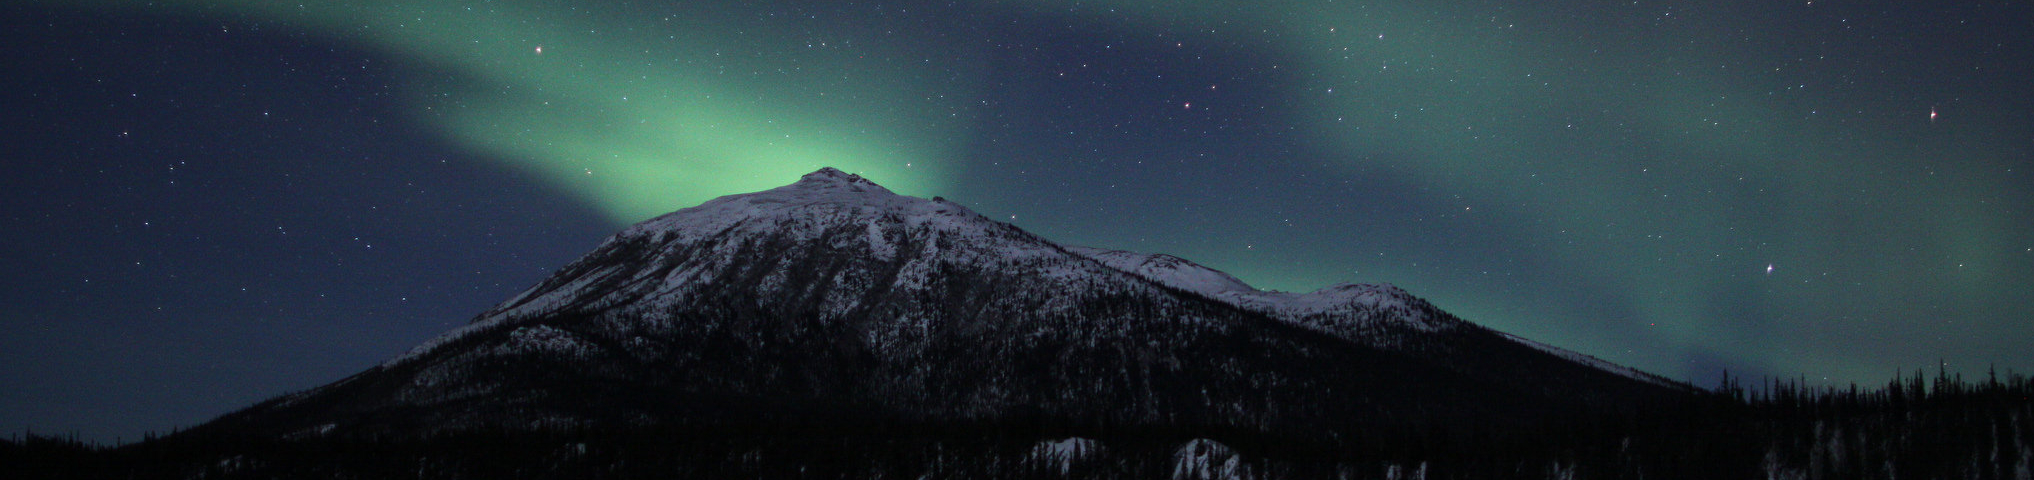 Where is the best place to see the aurora borealis?